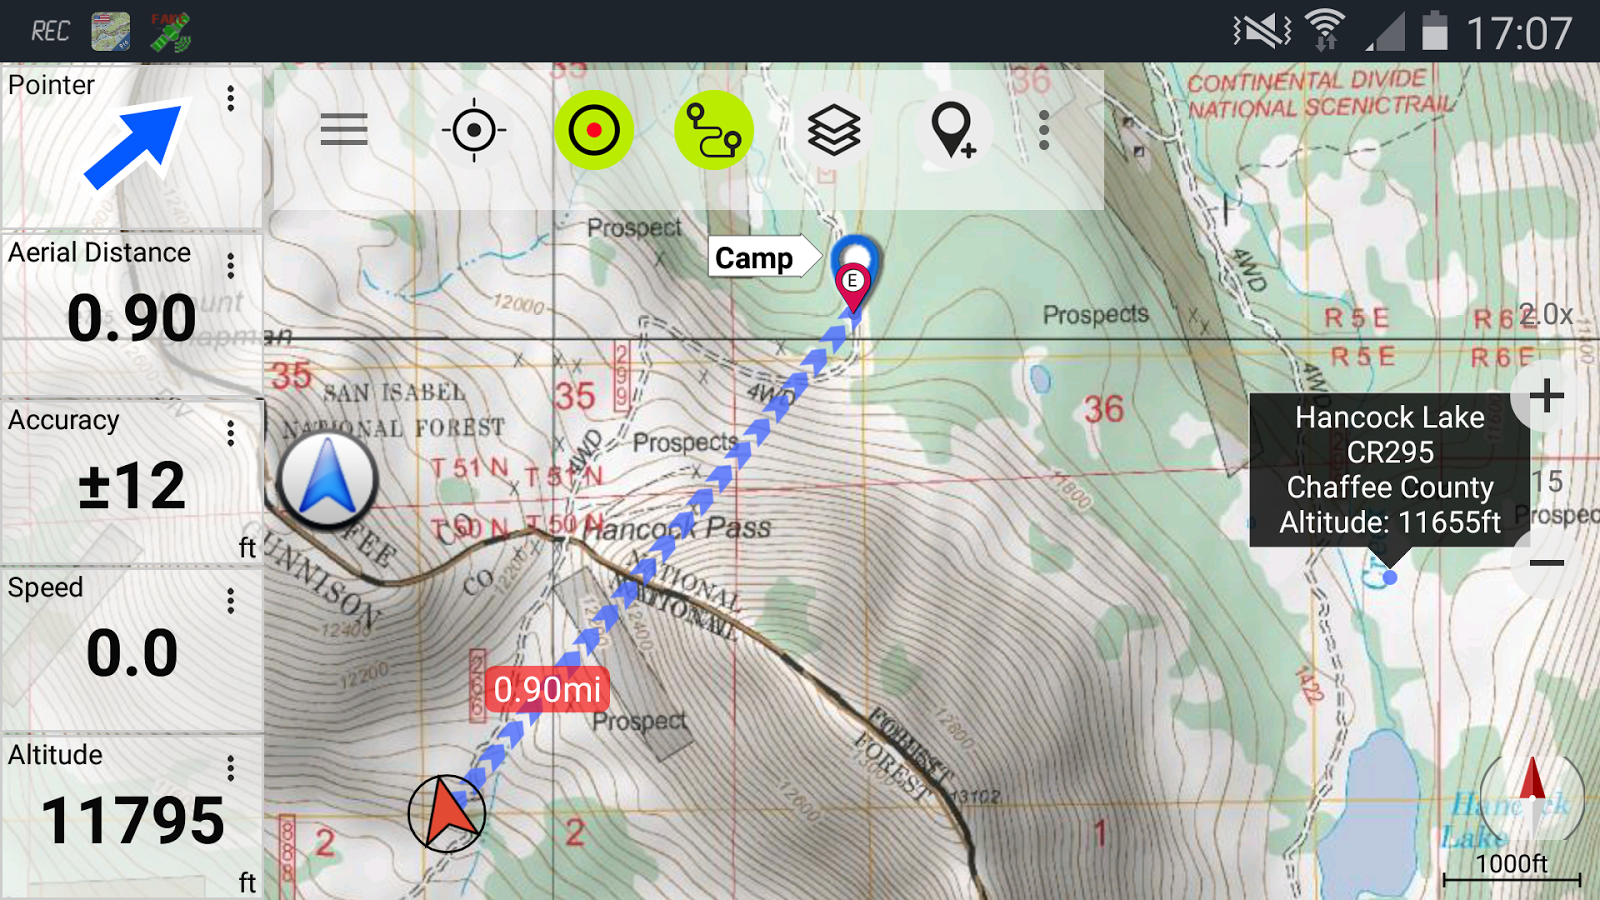 US Topo Maps Free Android Apps On Google Play - Us topological map